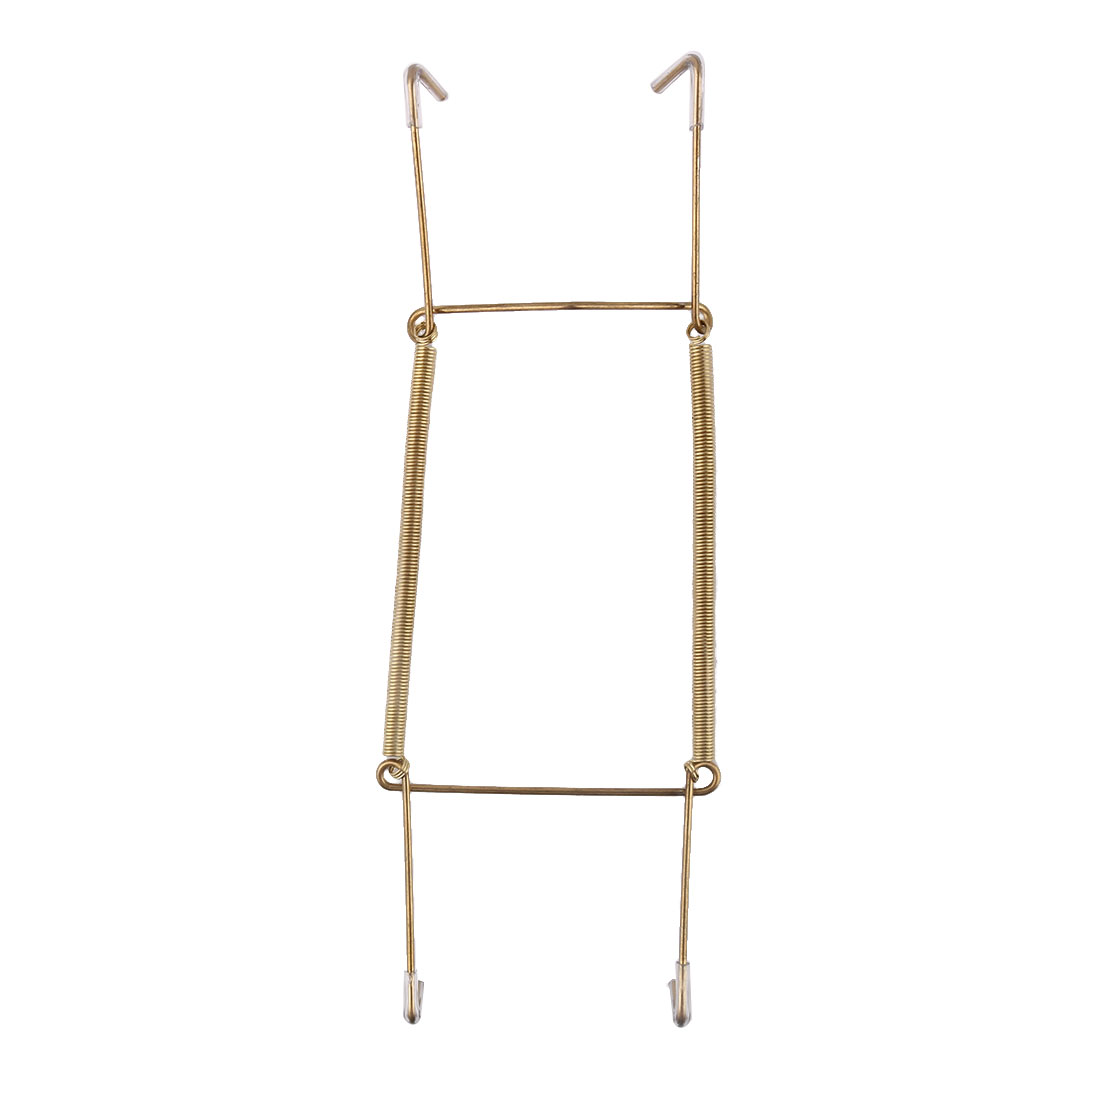 Metal 8.3 to 10 Inch Spring Plate Hangers Wall Holder Hook Display Gold Tone  sc 1 st  Walmart & Metal 8.3 to 10 Inch Spring Plate Hangers Wall Holder Hook Display ...